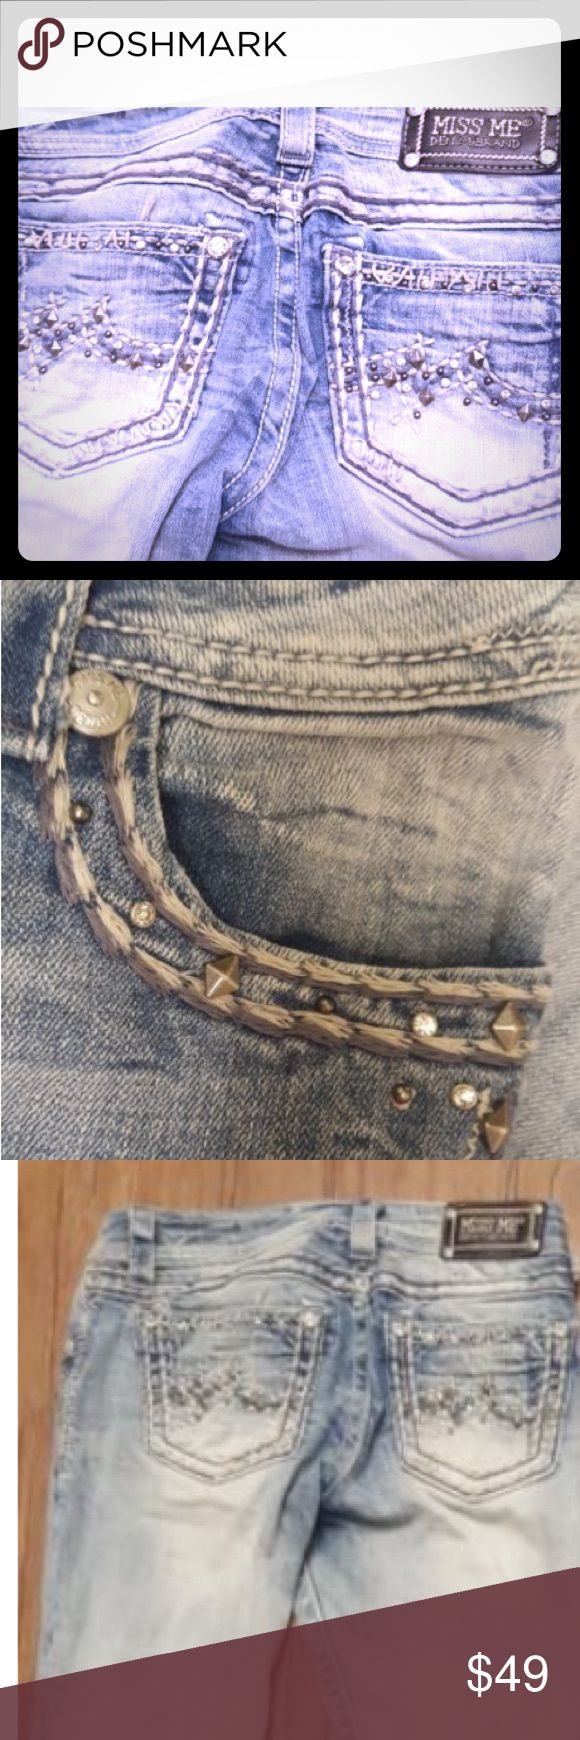 💋New HOT MISS ME BLING BOOTY JEANS LIGHT DENIM 27 New 💋HOT MISS ME BLING BOOTY JEANS LIGHT DENIM SZ 27. Rare find. So comfy & sexy!!! Does wonders for The rear end. You will love those. NWOT Miss Me Jeans Boot Cut